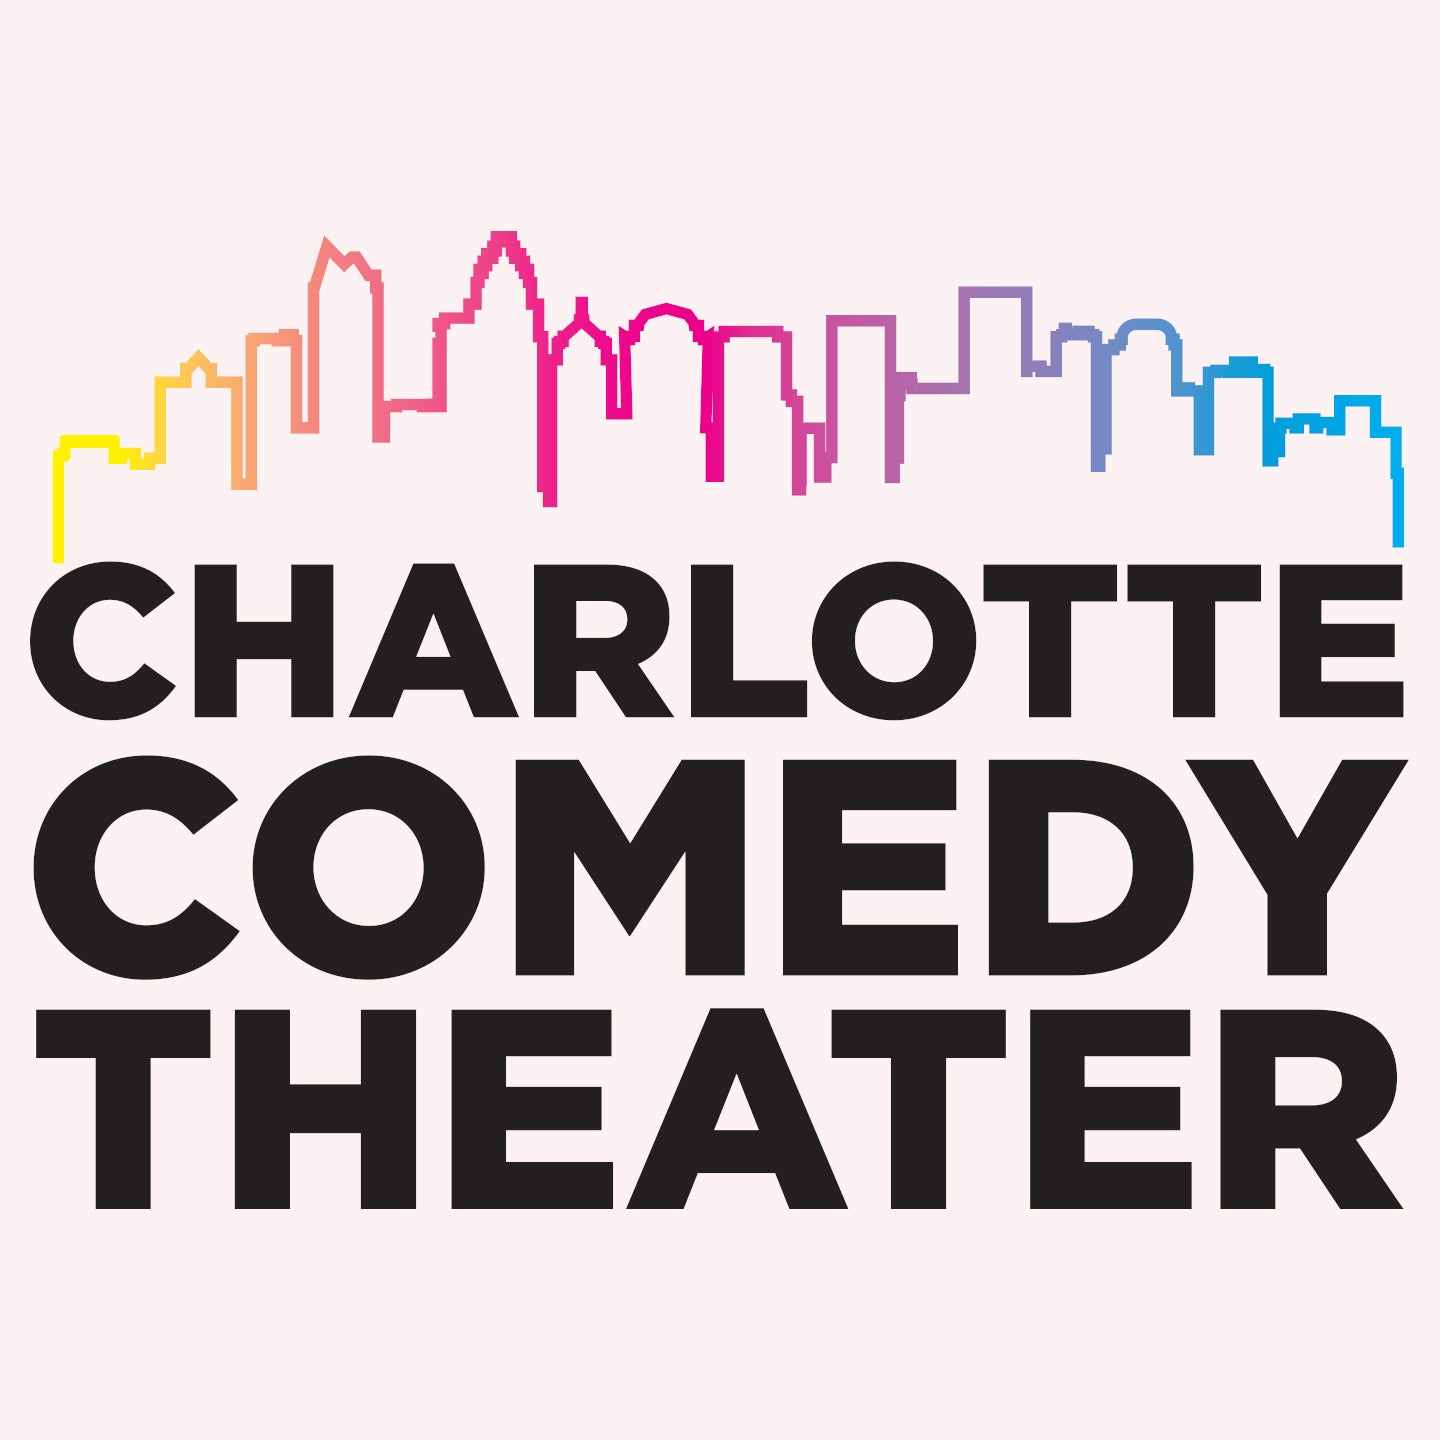 Charlotte Comedy Theater Improv Comedy Show